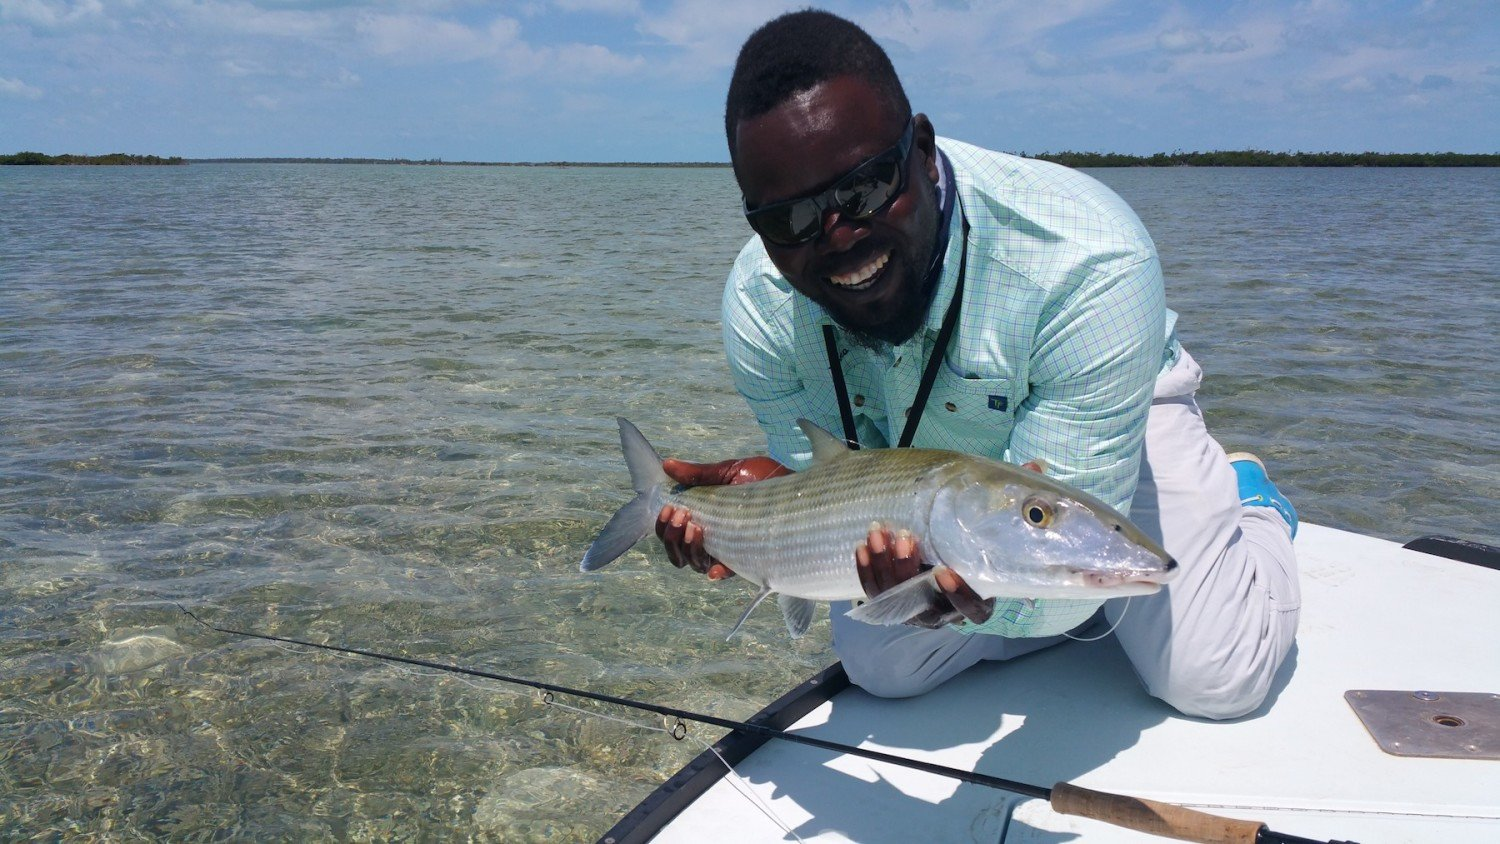 T&T Pro guide Meko Glinton with a nice Bahamian bone and the Solar 908